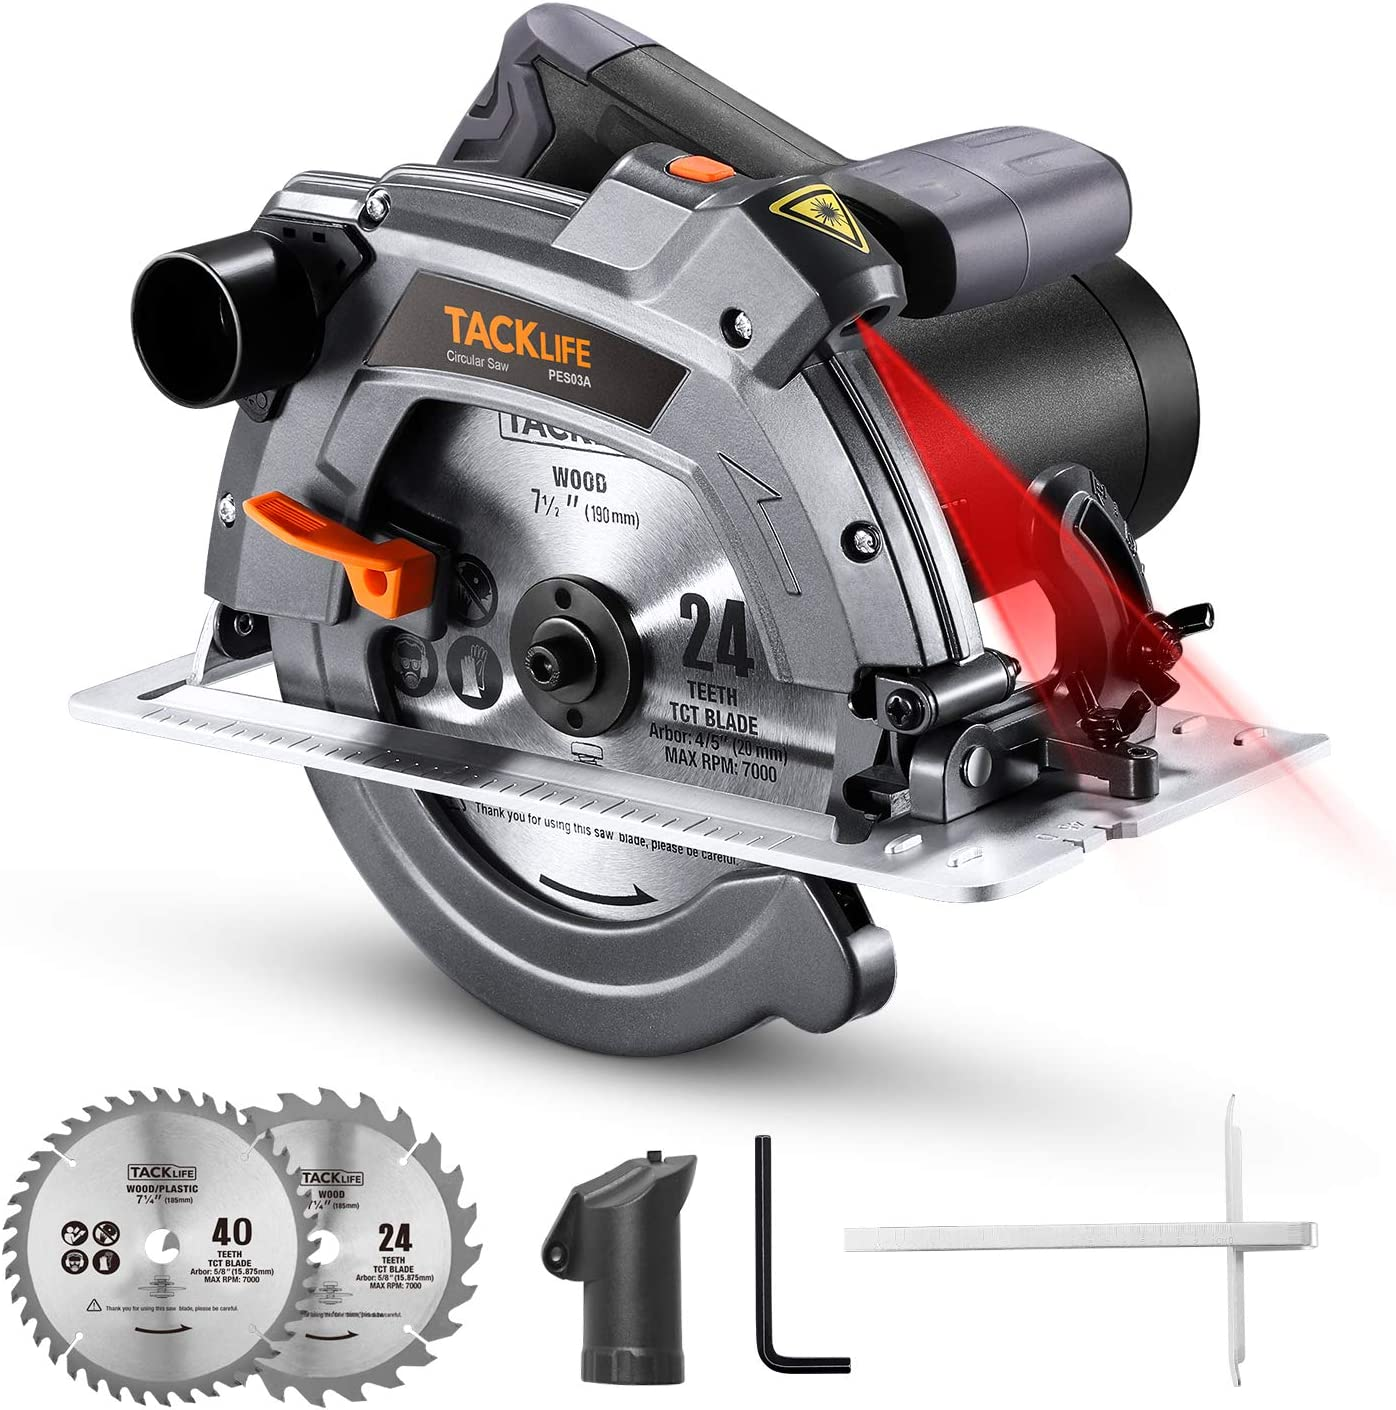 "Circular Saw 12.5A TACKLIFE,7-1/4"" & 7-1/2"" Two Blades, Electric Circular Saw with Aluminum Base, 5000 RPM, 0-45° Bevel Cuts, 0°"